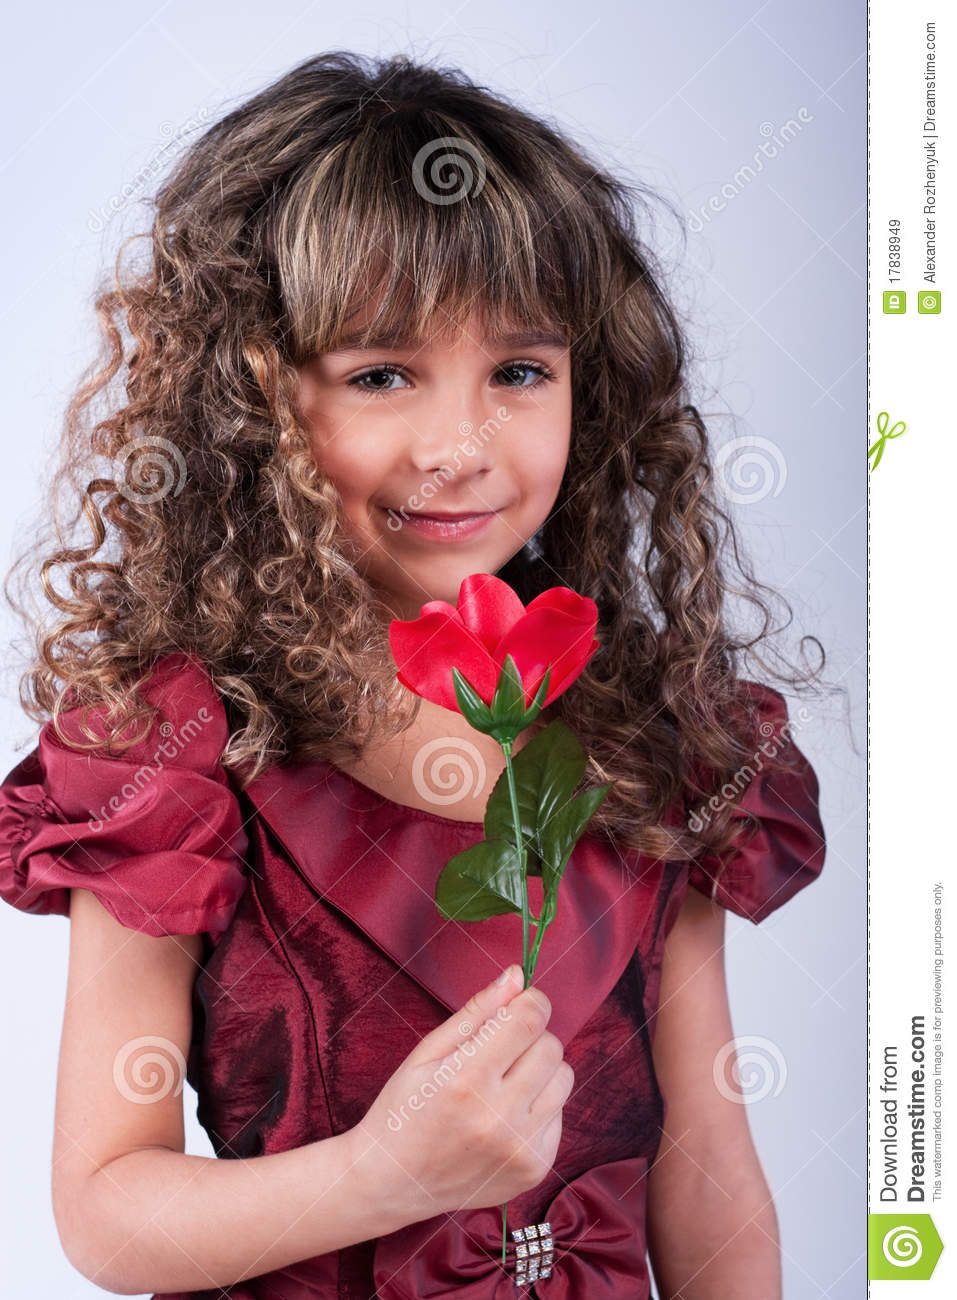 Beautiful Little Girl With Red Rose Stock Image - Image Of Dancer, Curly 17838949-6613